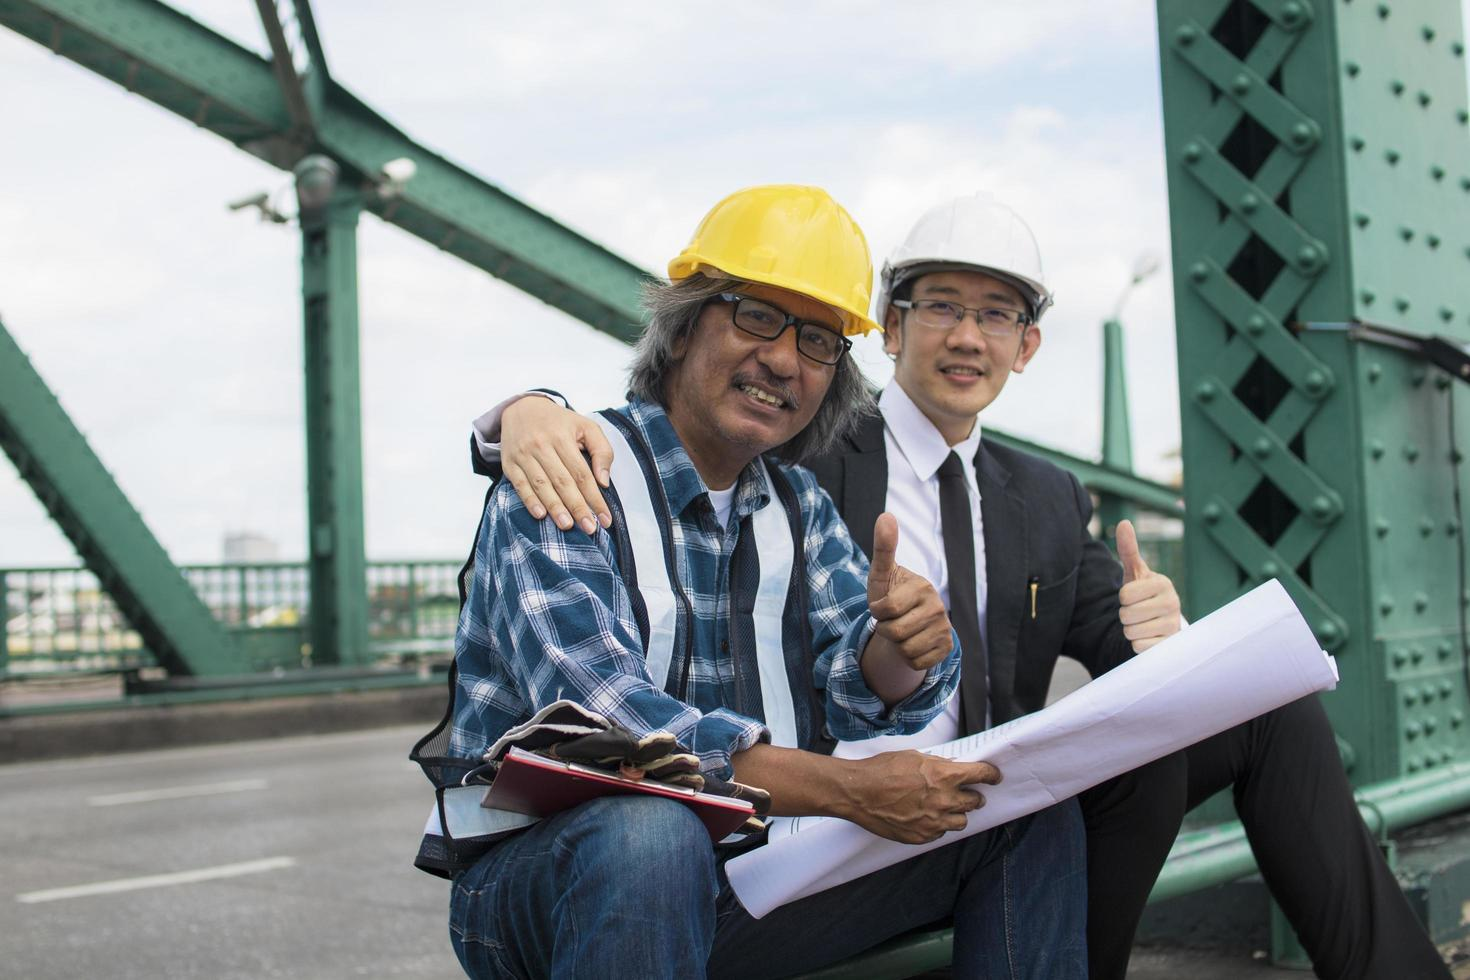 A contractor and engineer giving thumbs up photo